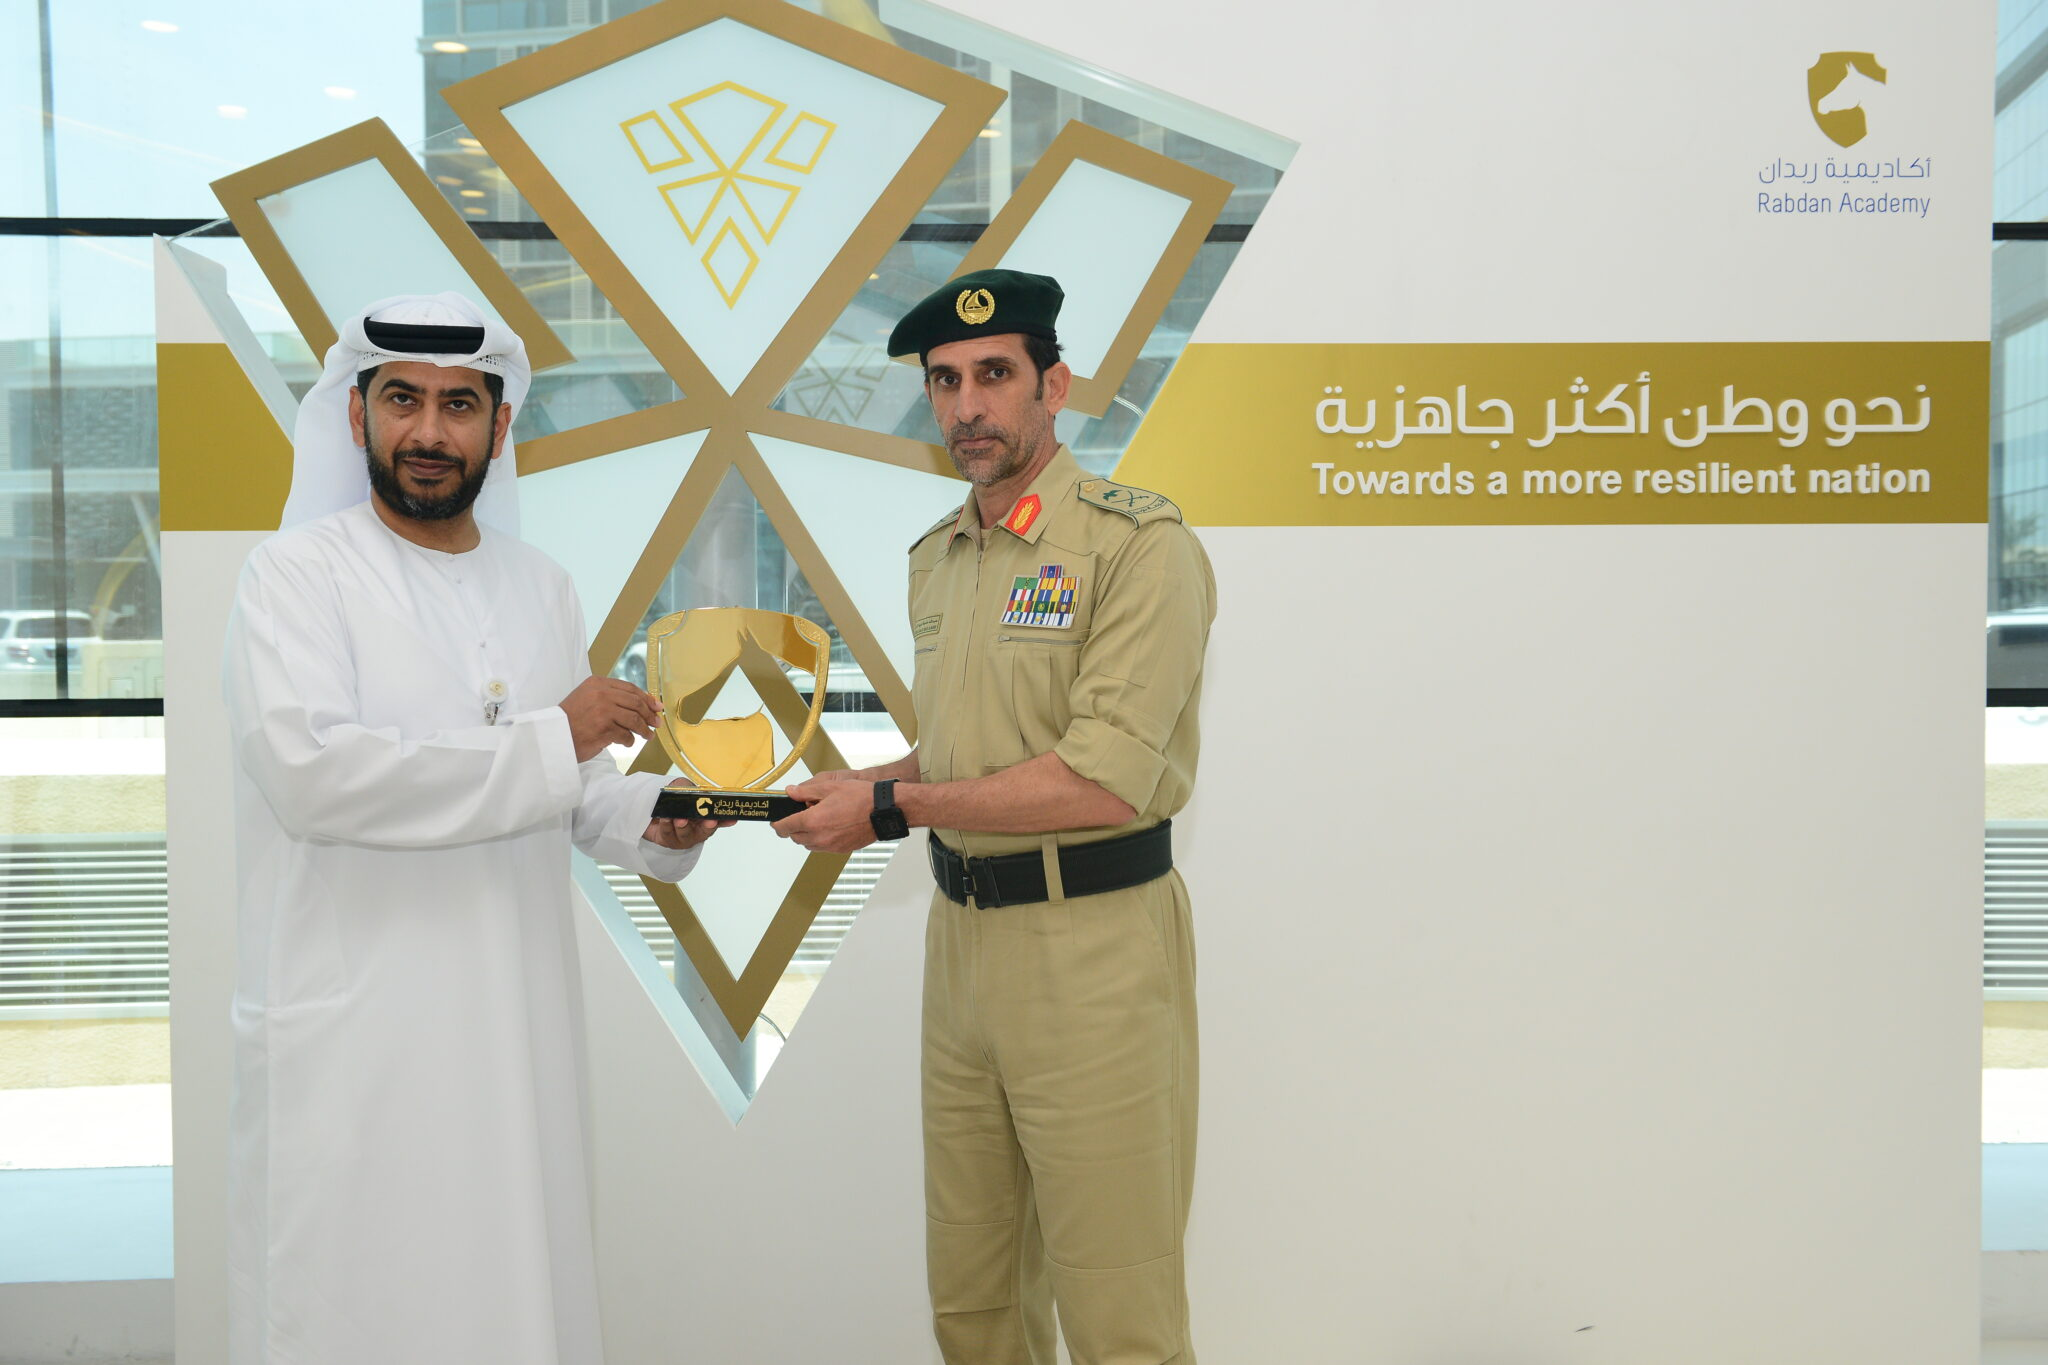 Commander-in-Chief of Dubai Police Visits Rabdan Academy